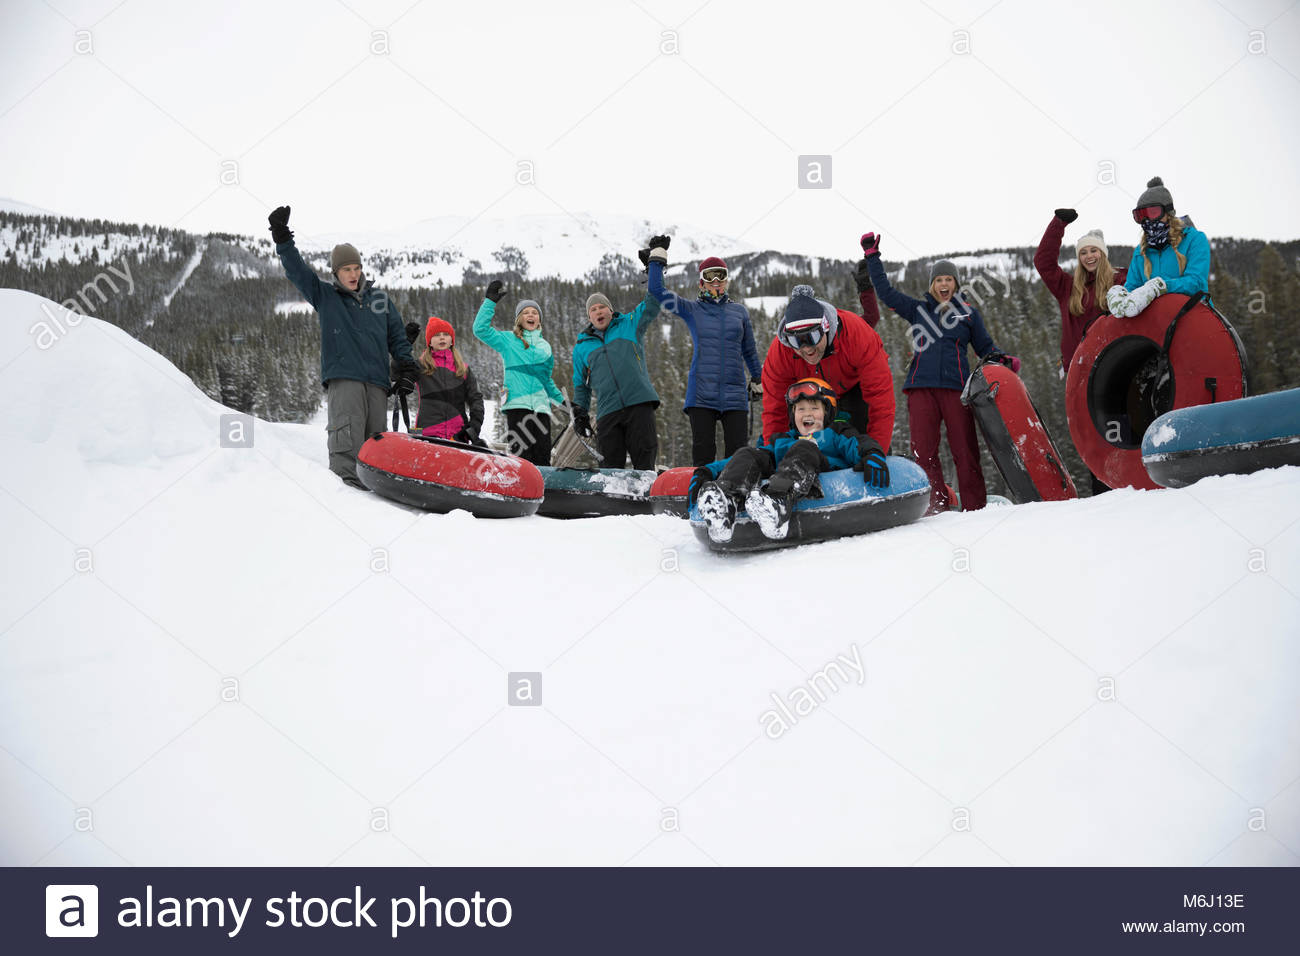 Portrait family cheering, inner tubing in snow at snow park - Stock Image